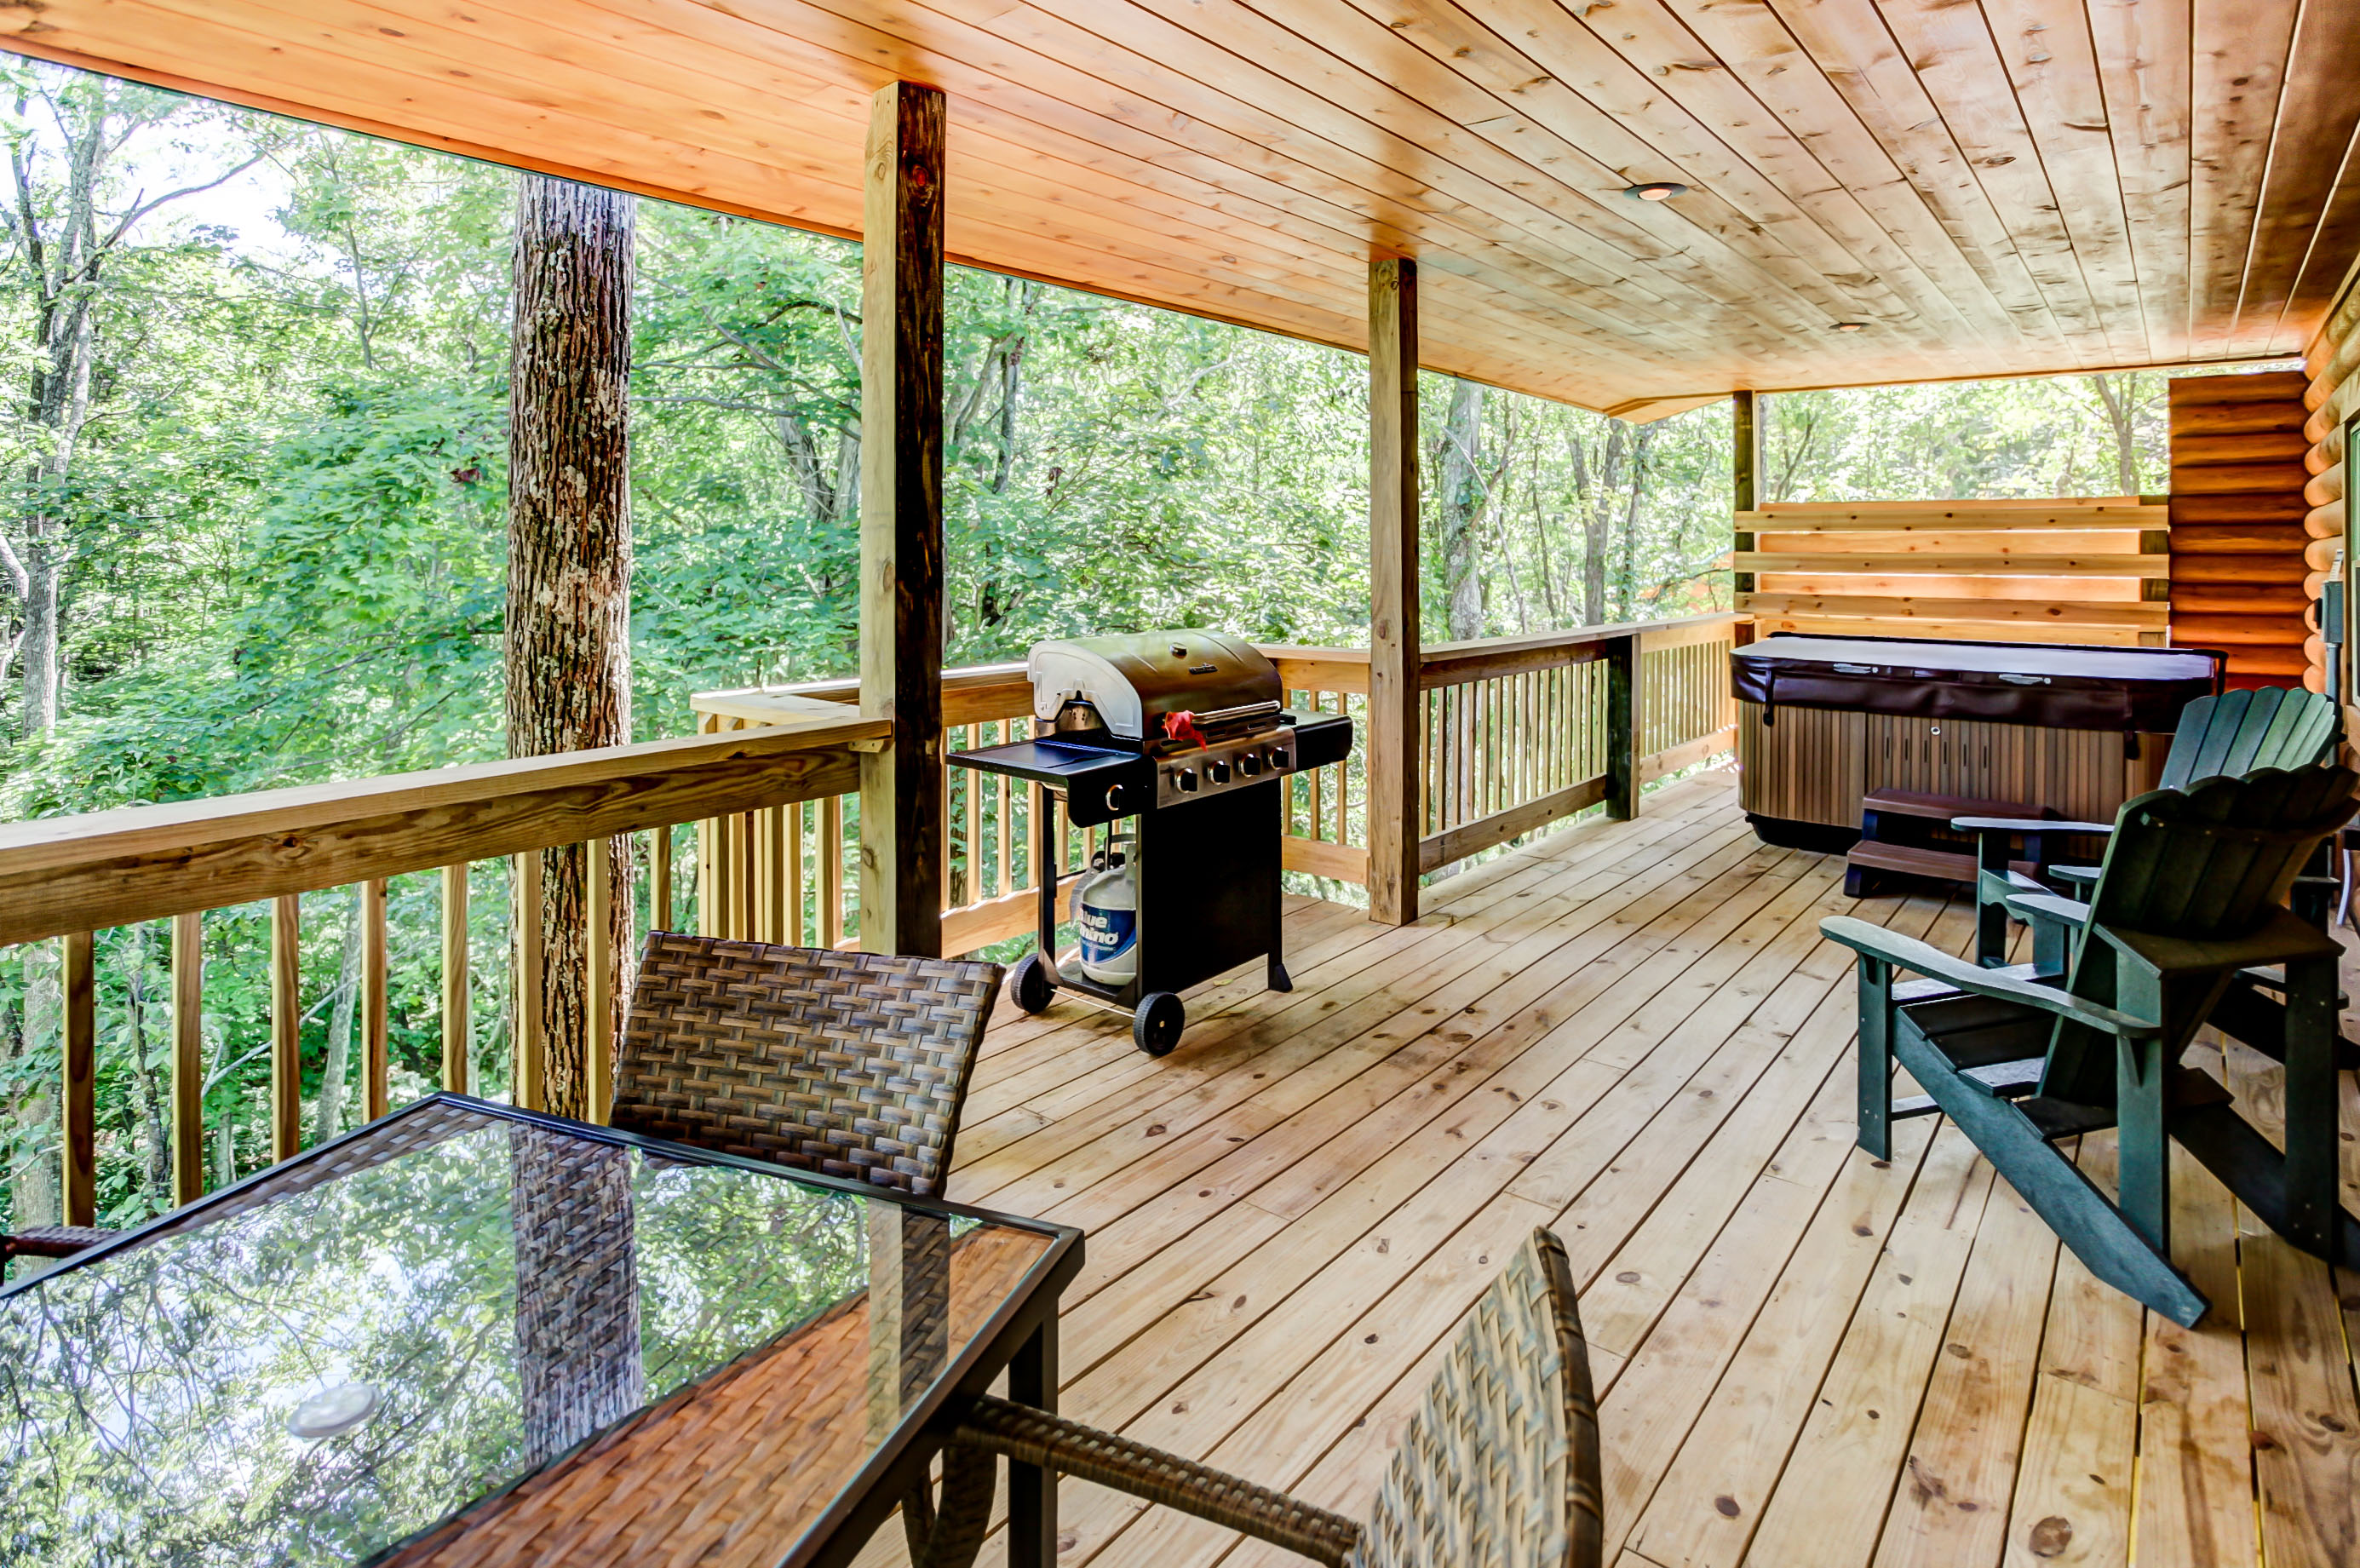 Briarwood Deck - Wrap-around deck with porch swing, seating, gas grill and hot tub